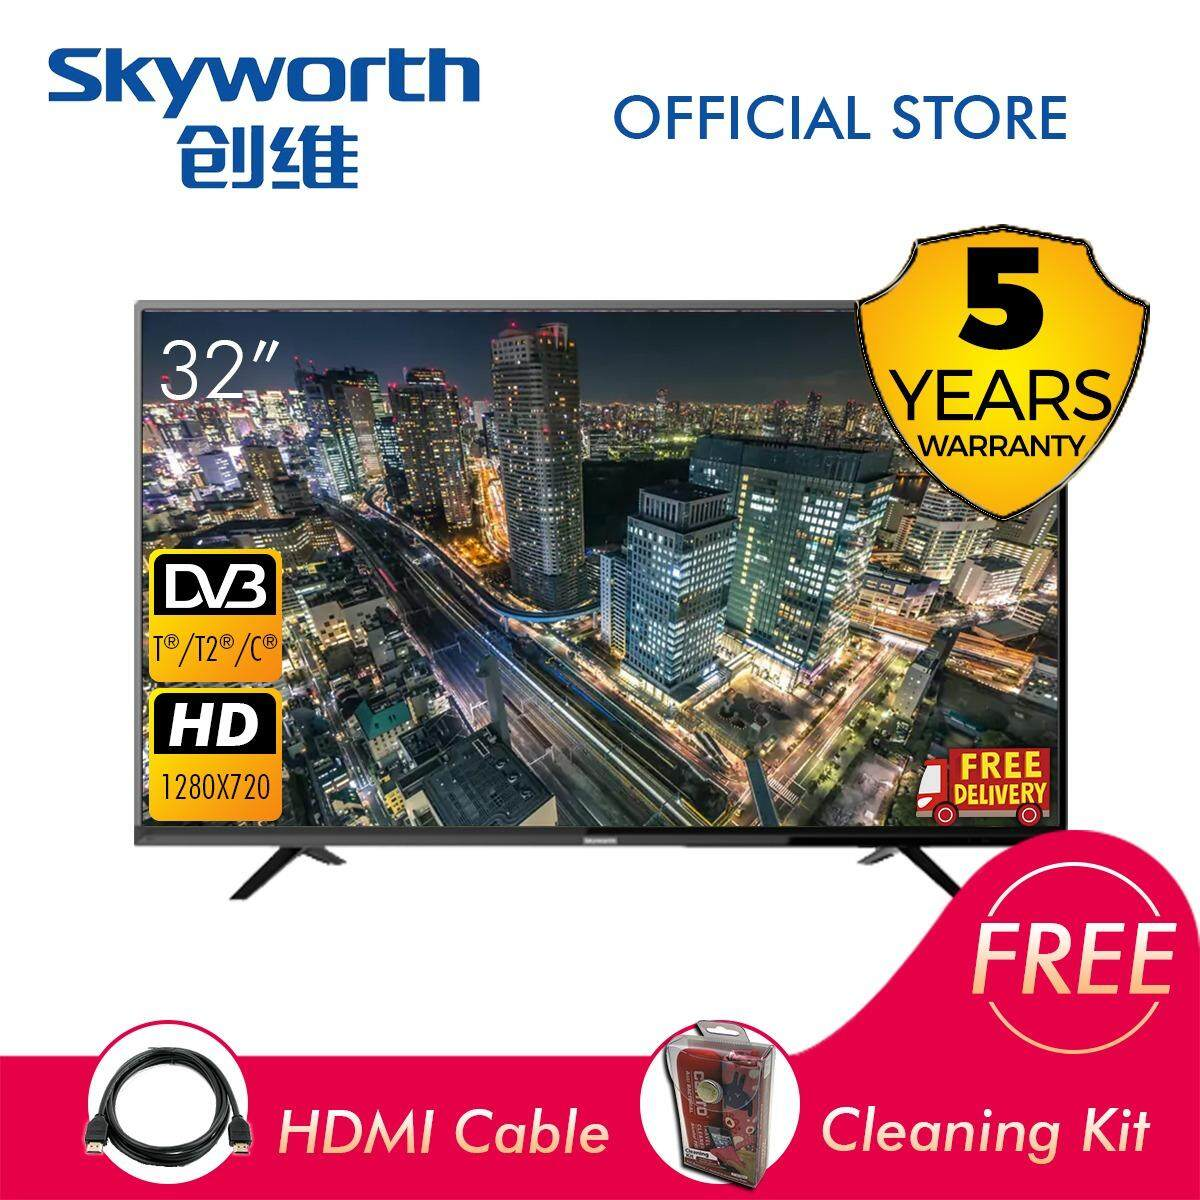 "Skyworth SKYWORTH 32"" HD LED TV Image"